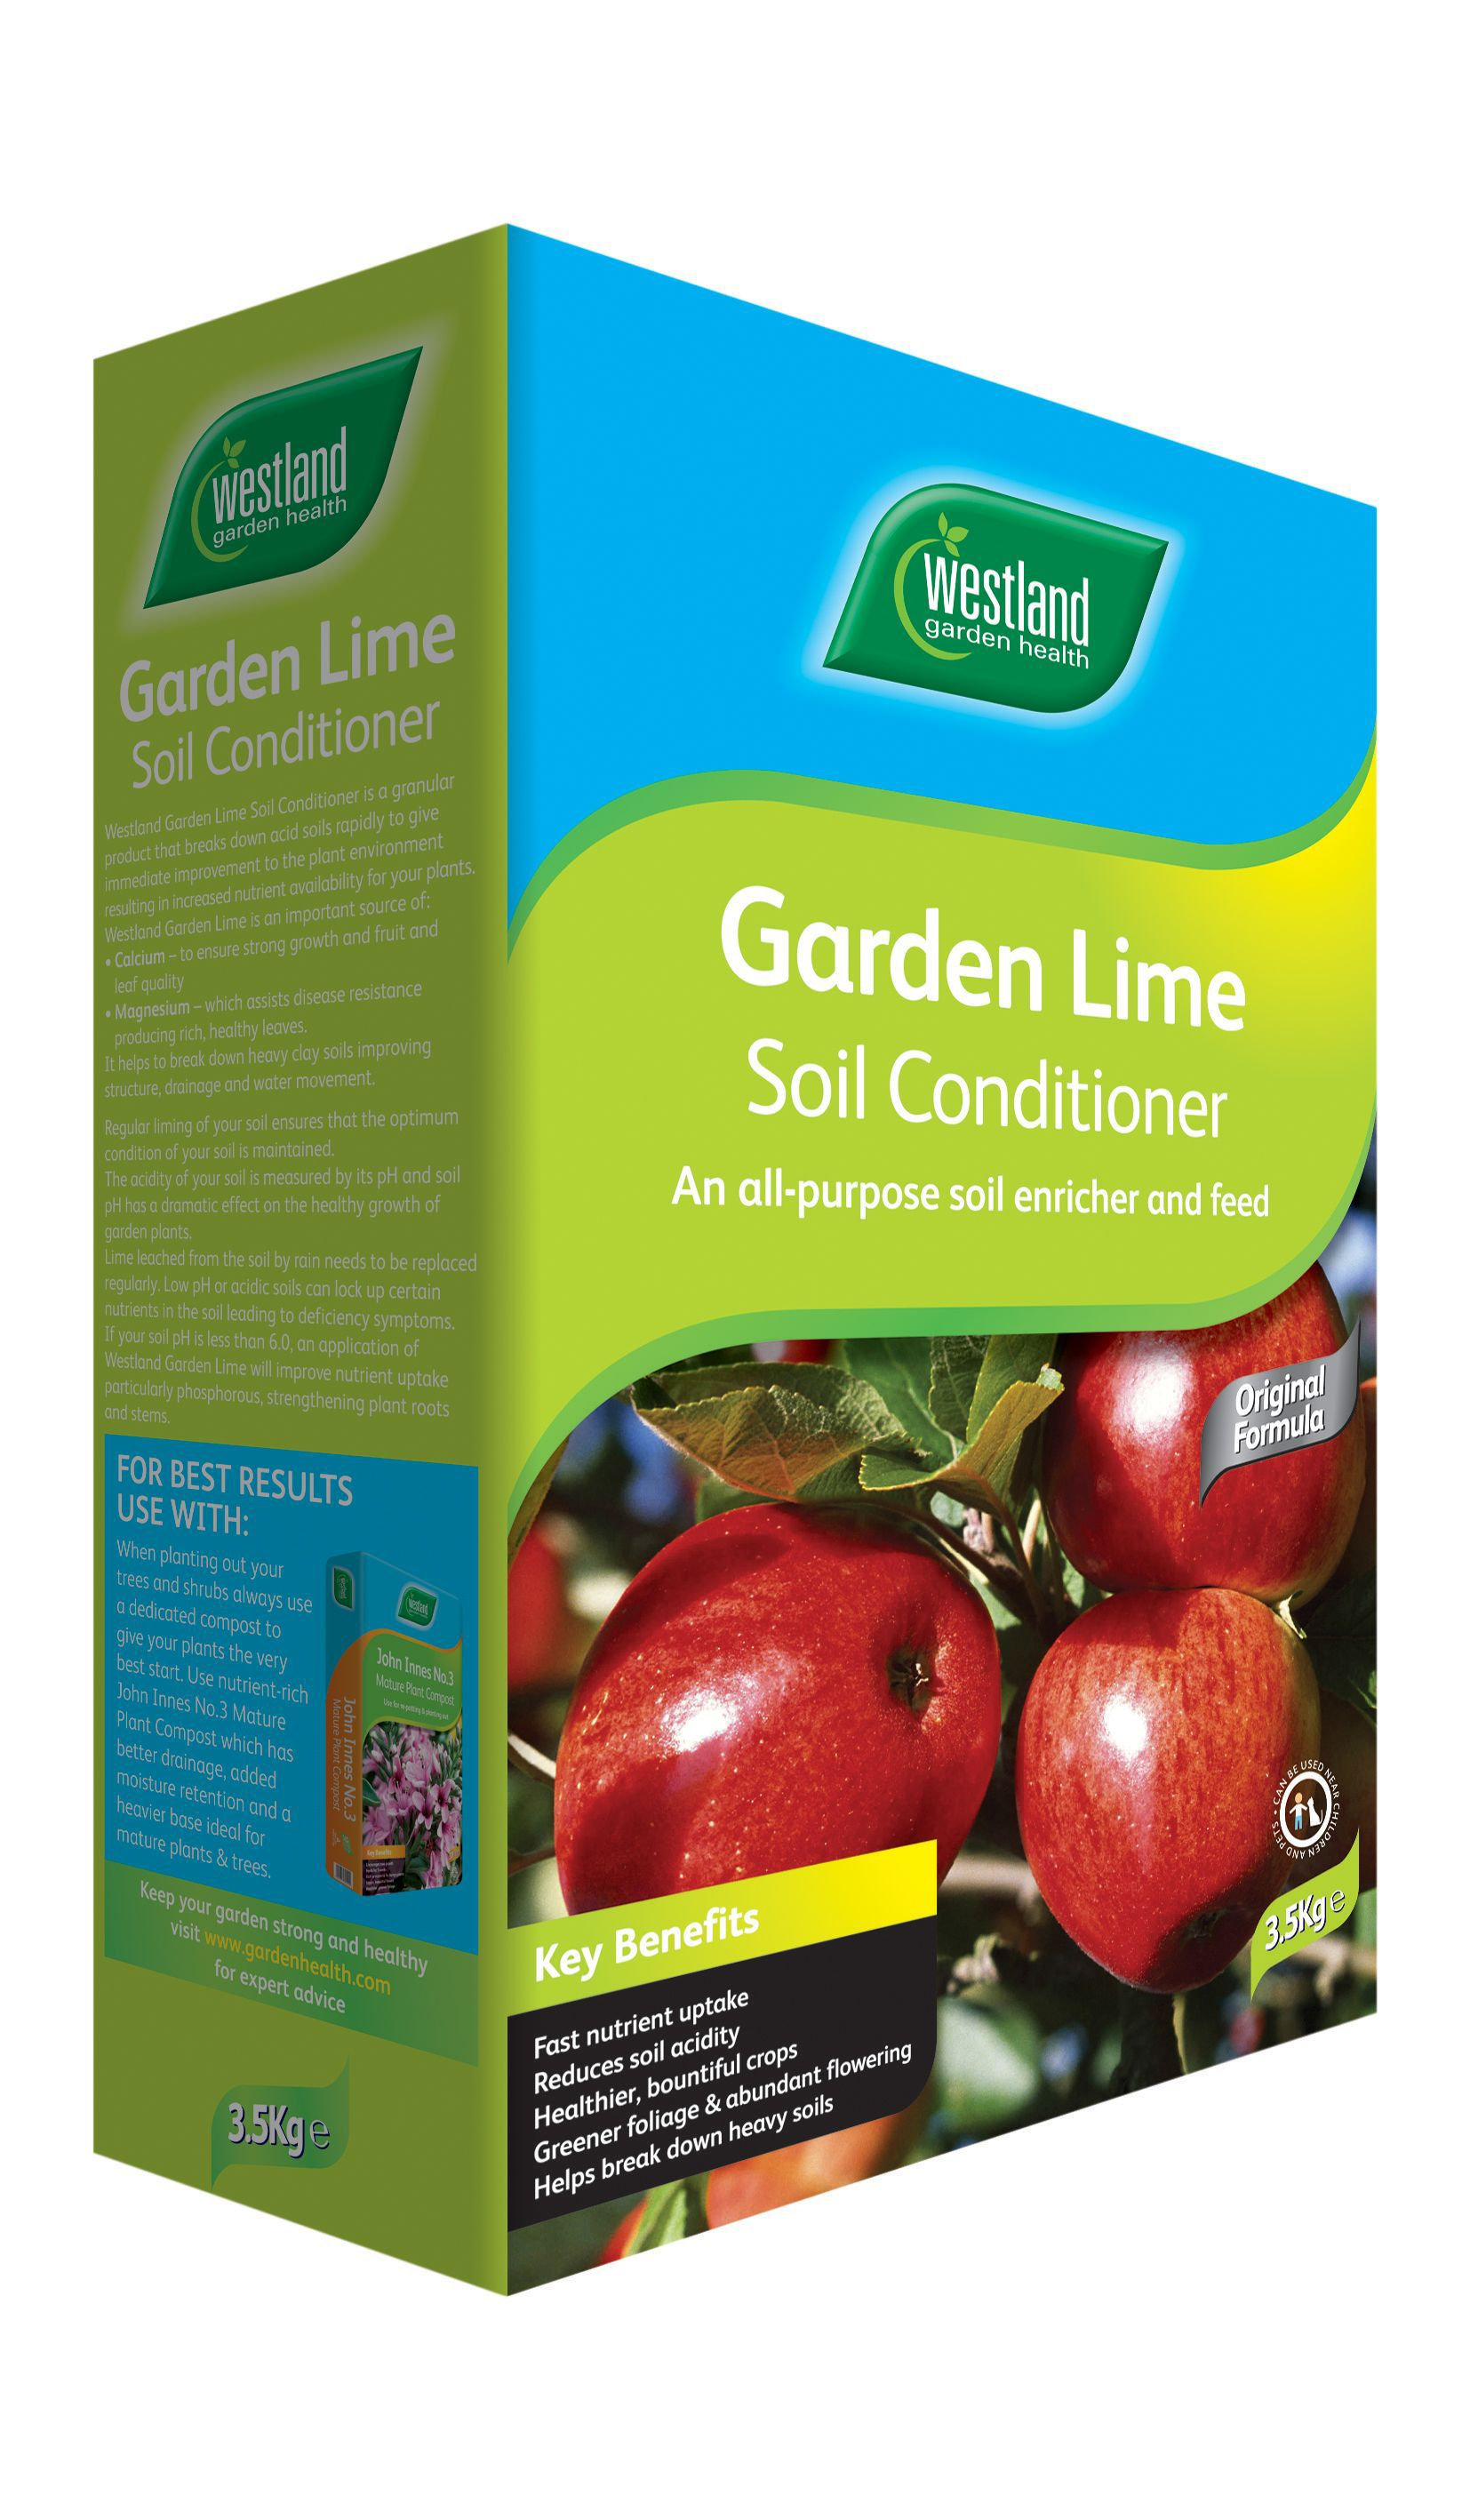 westland garden lime granular soil conditioner. Black Bedroom Furniture Sets. Home Design Ideas